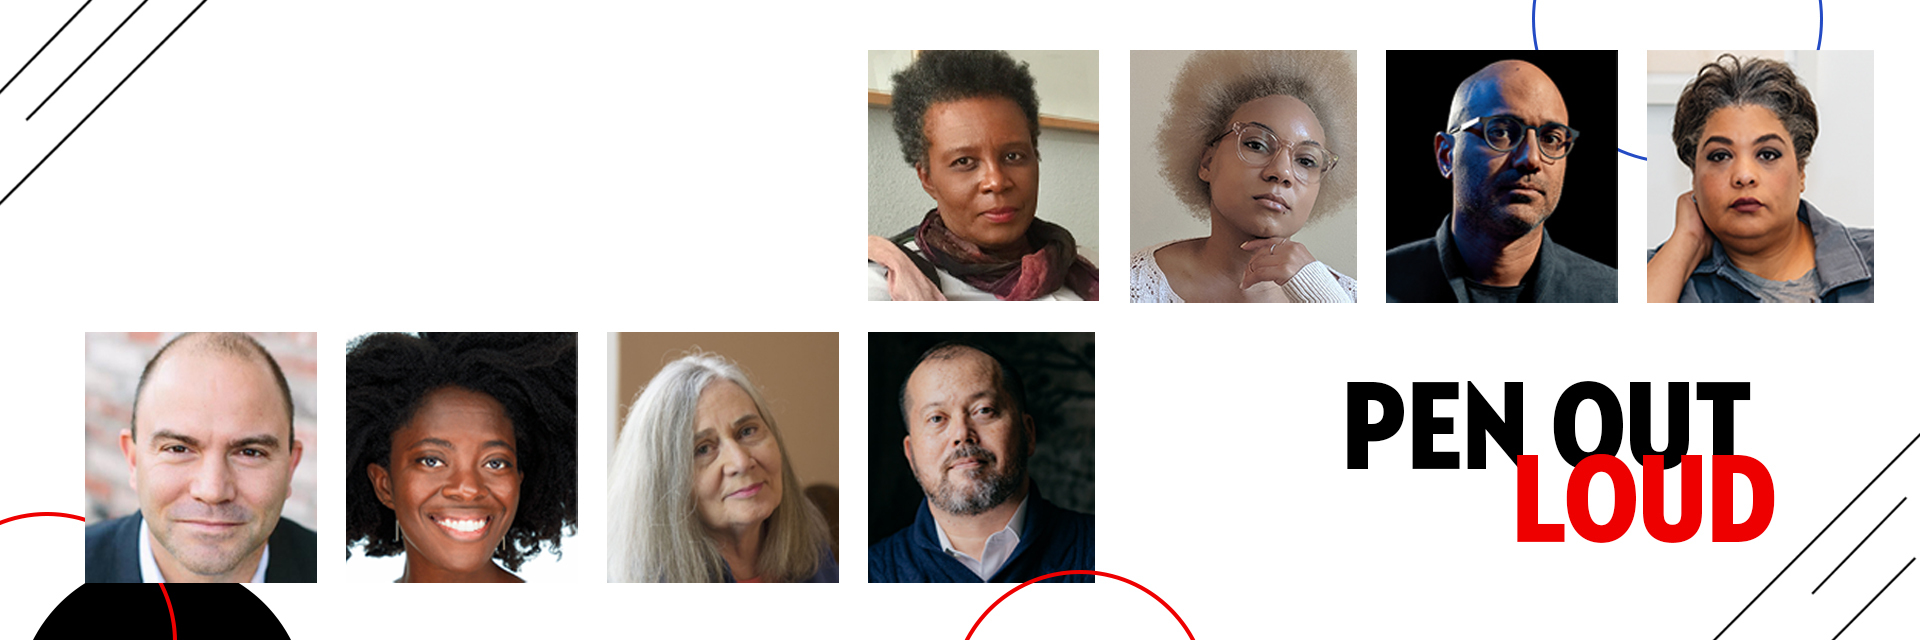 Collage of PEN Out Loud featured speakers and interlocutors: Yaa Gyasi, Roxane Gay, Ayad Akhtar, Ben Rhodes, Marilynne Robinson, Alexander Chee, Claudia Rankine (left to right)